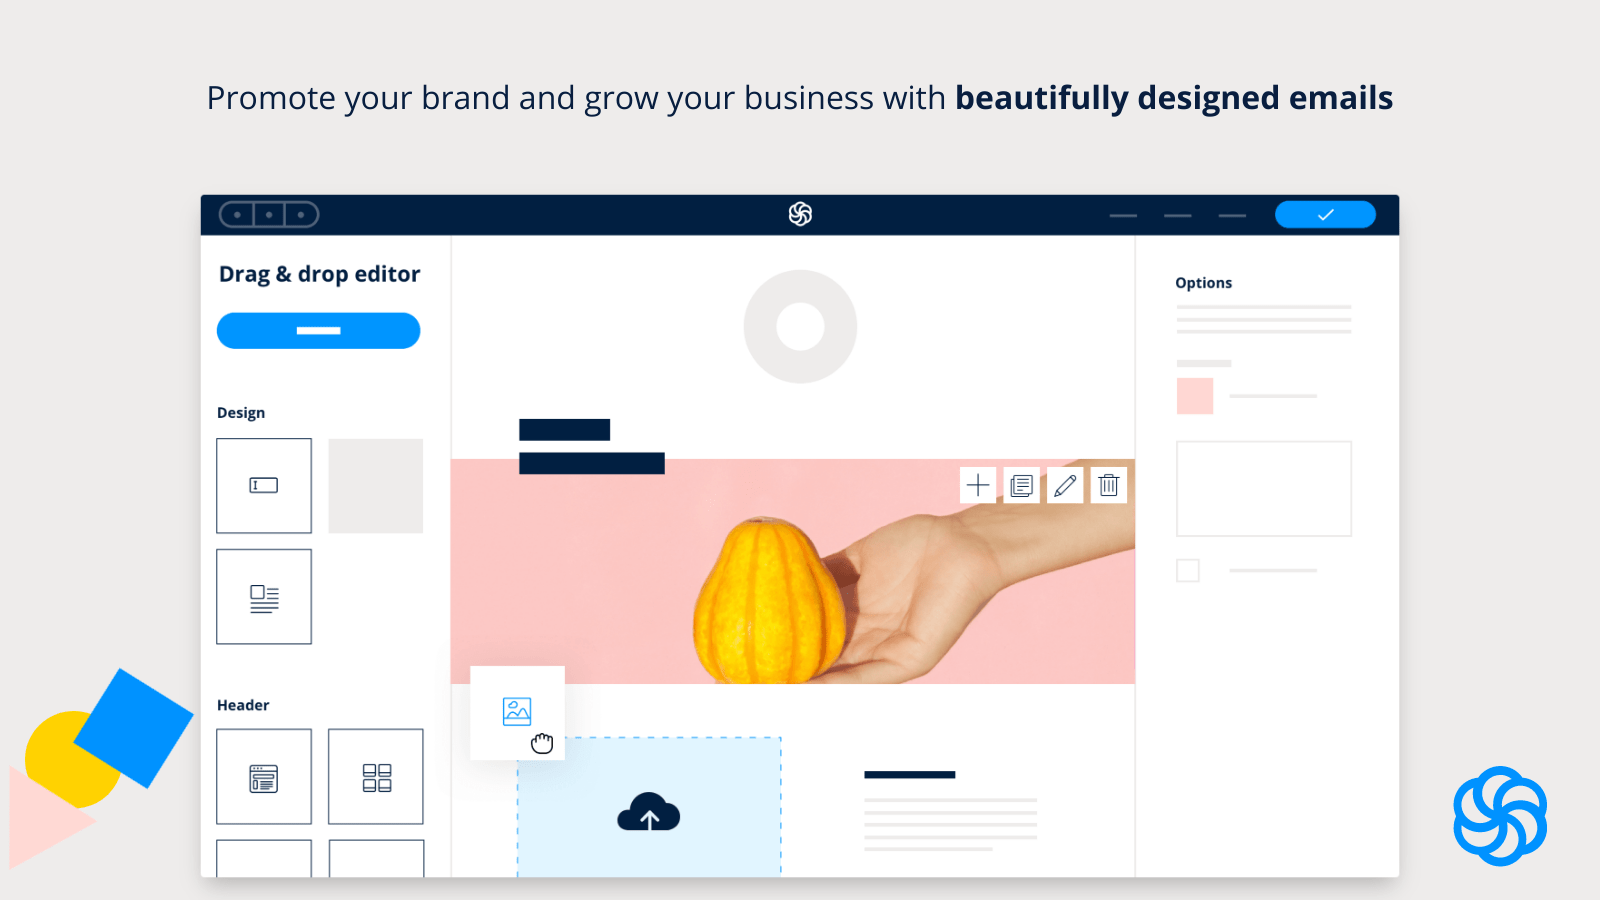 Build beautiful campaigns with our drag & drop email builder